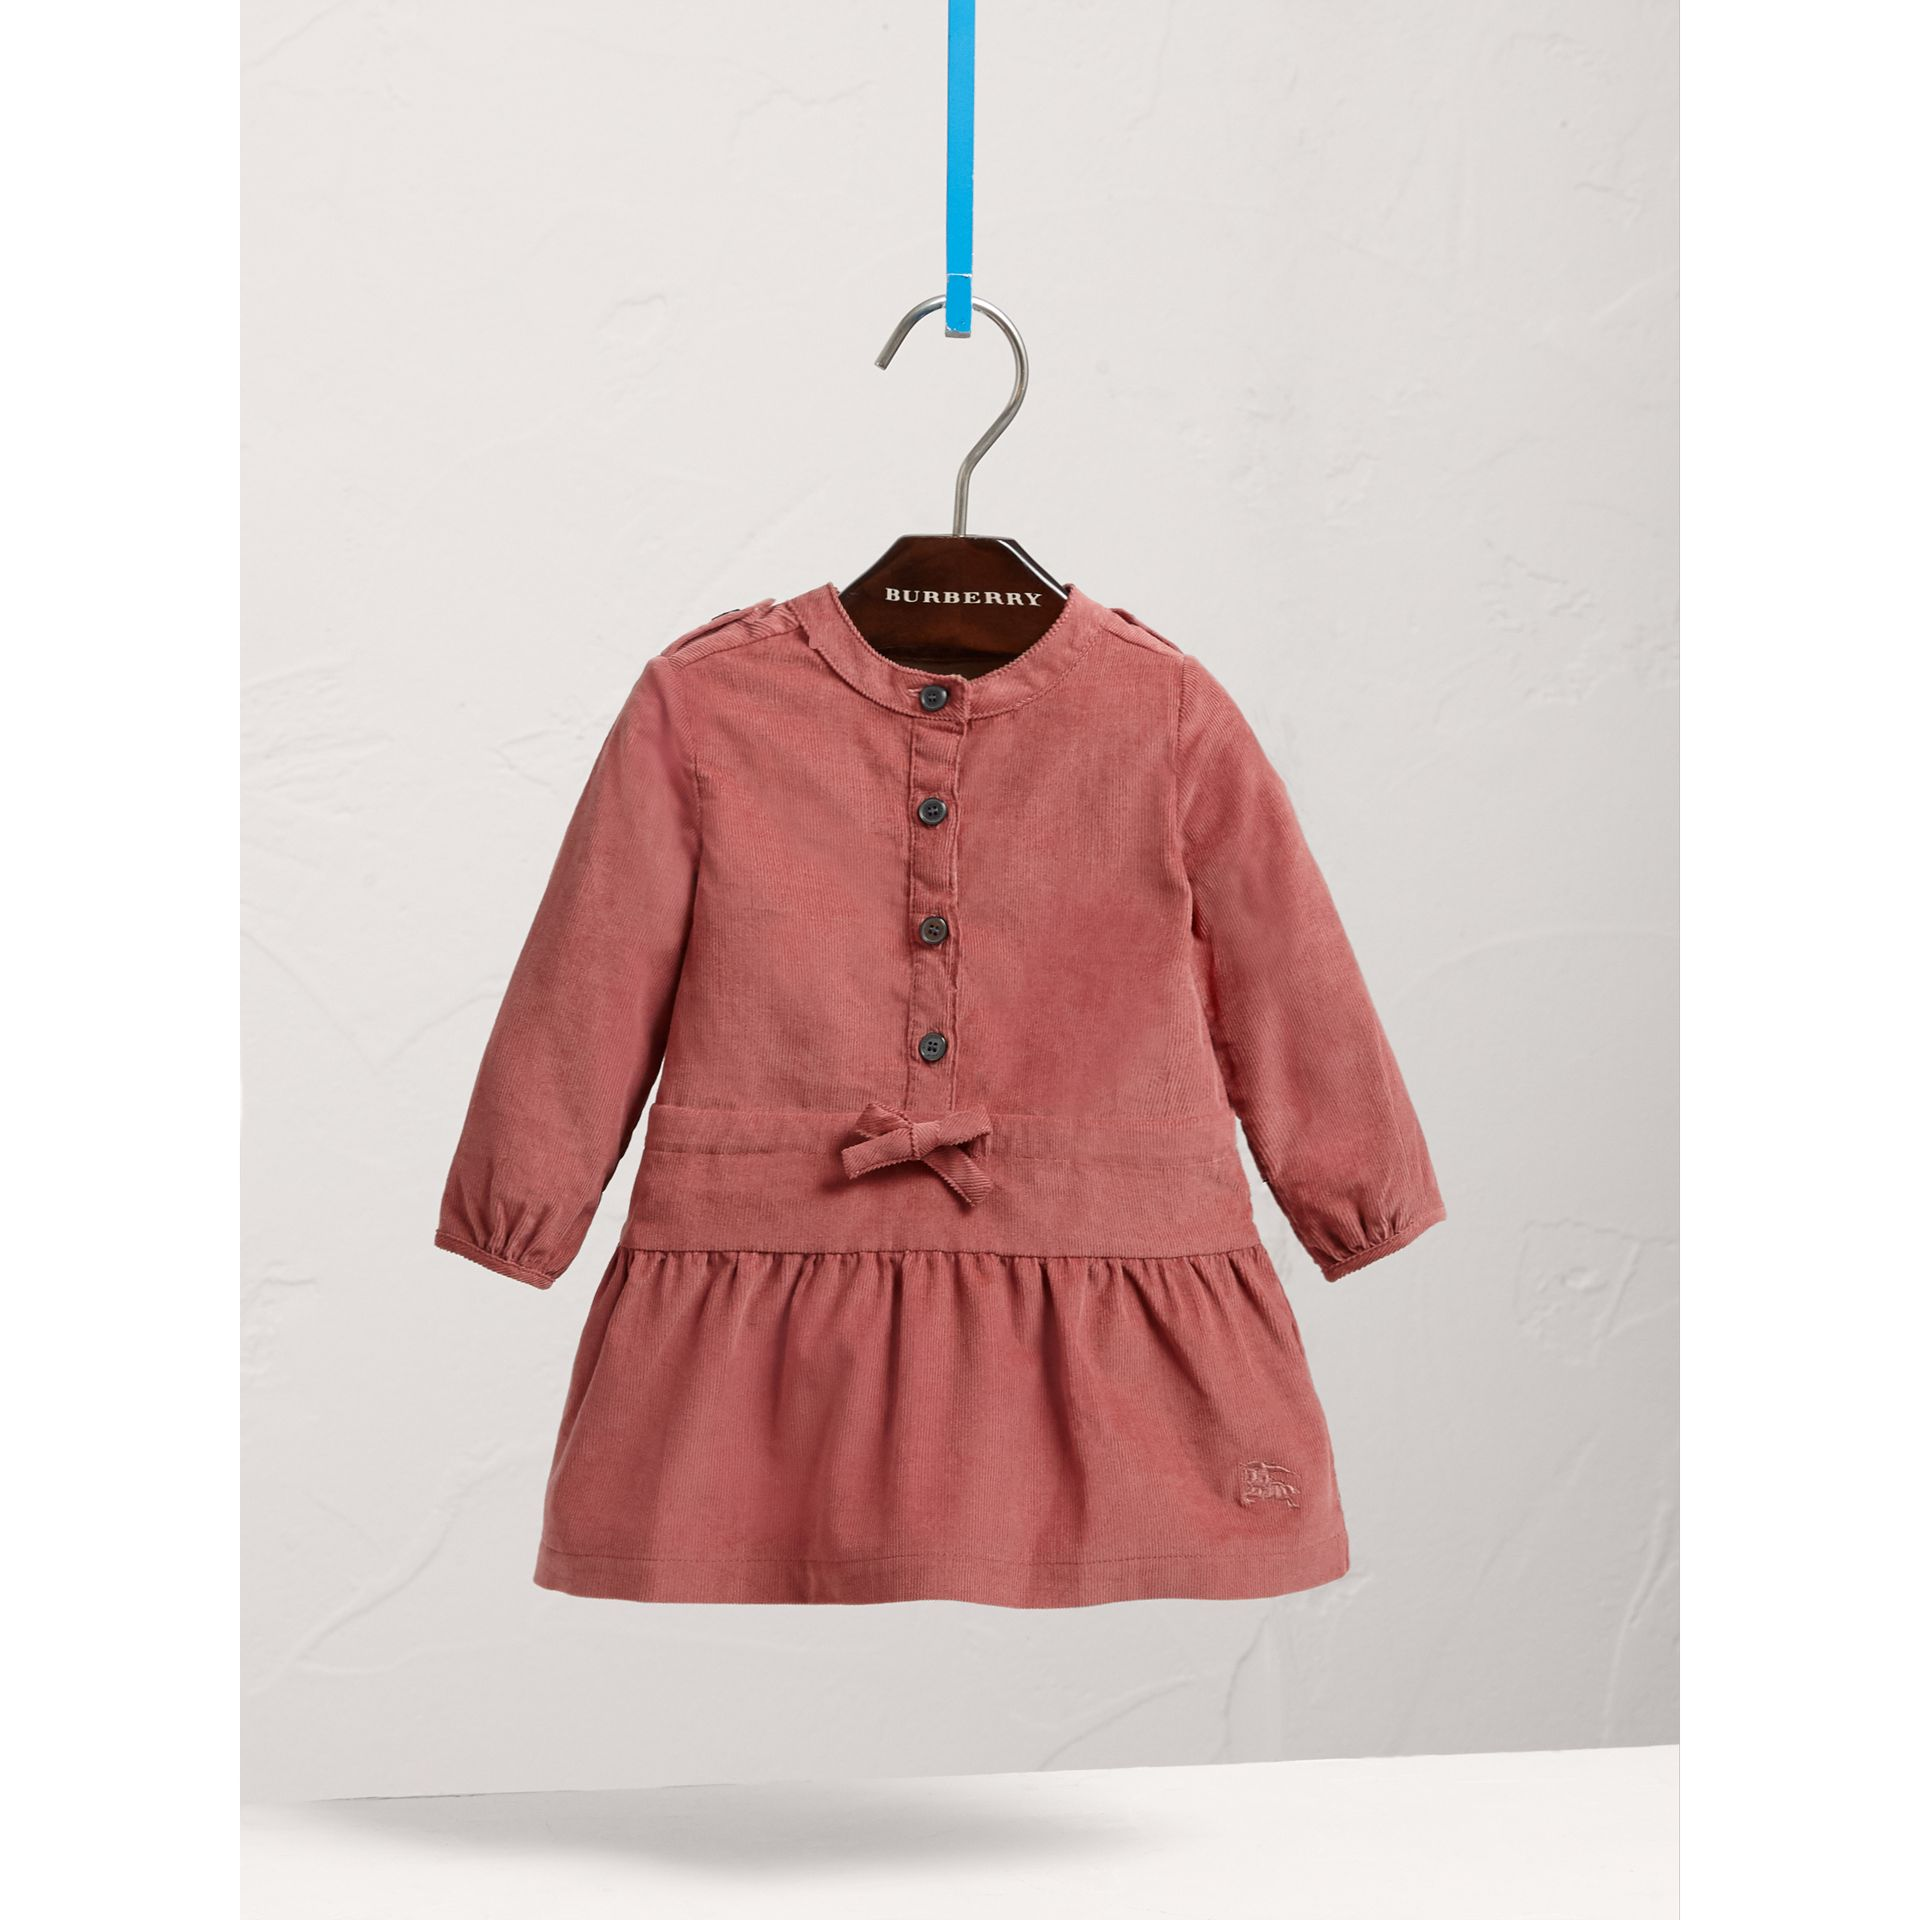 Gathered Tie-waist Cotton Corduroy Dress in Rosewood | Burberry - gallery image 2